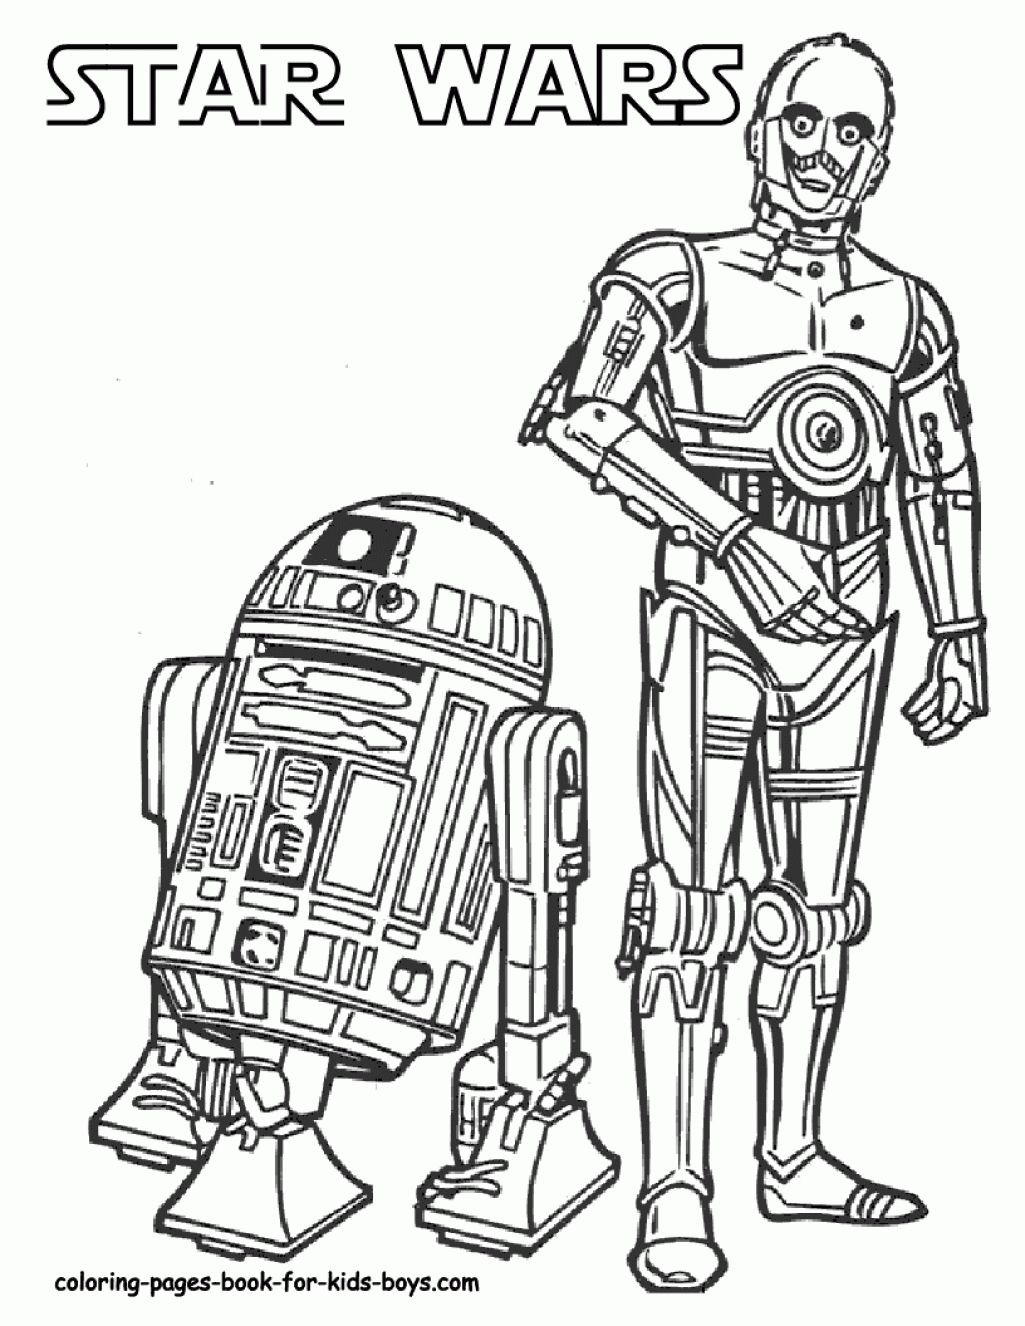 Pin by Deborah Scott on Free coloring pages | Pinterest | Lego star wars